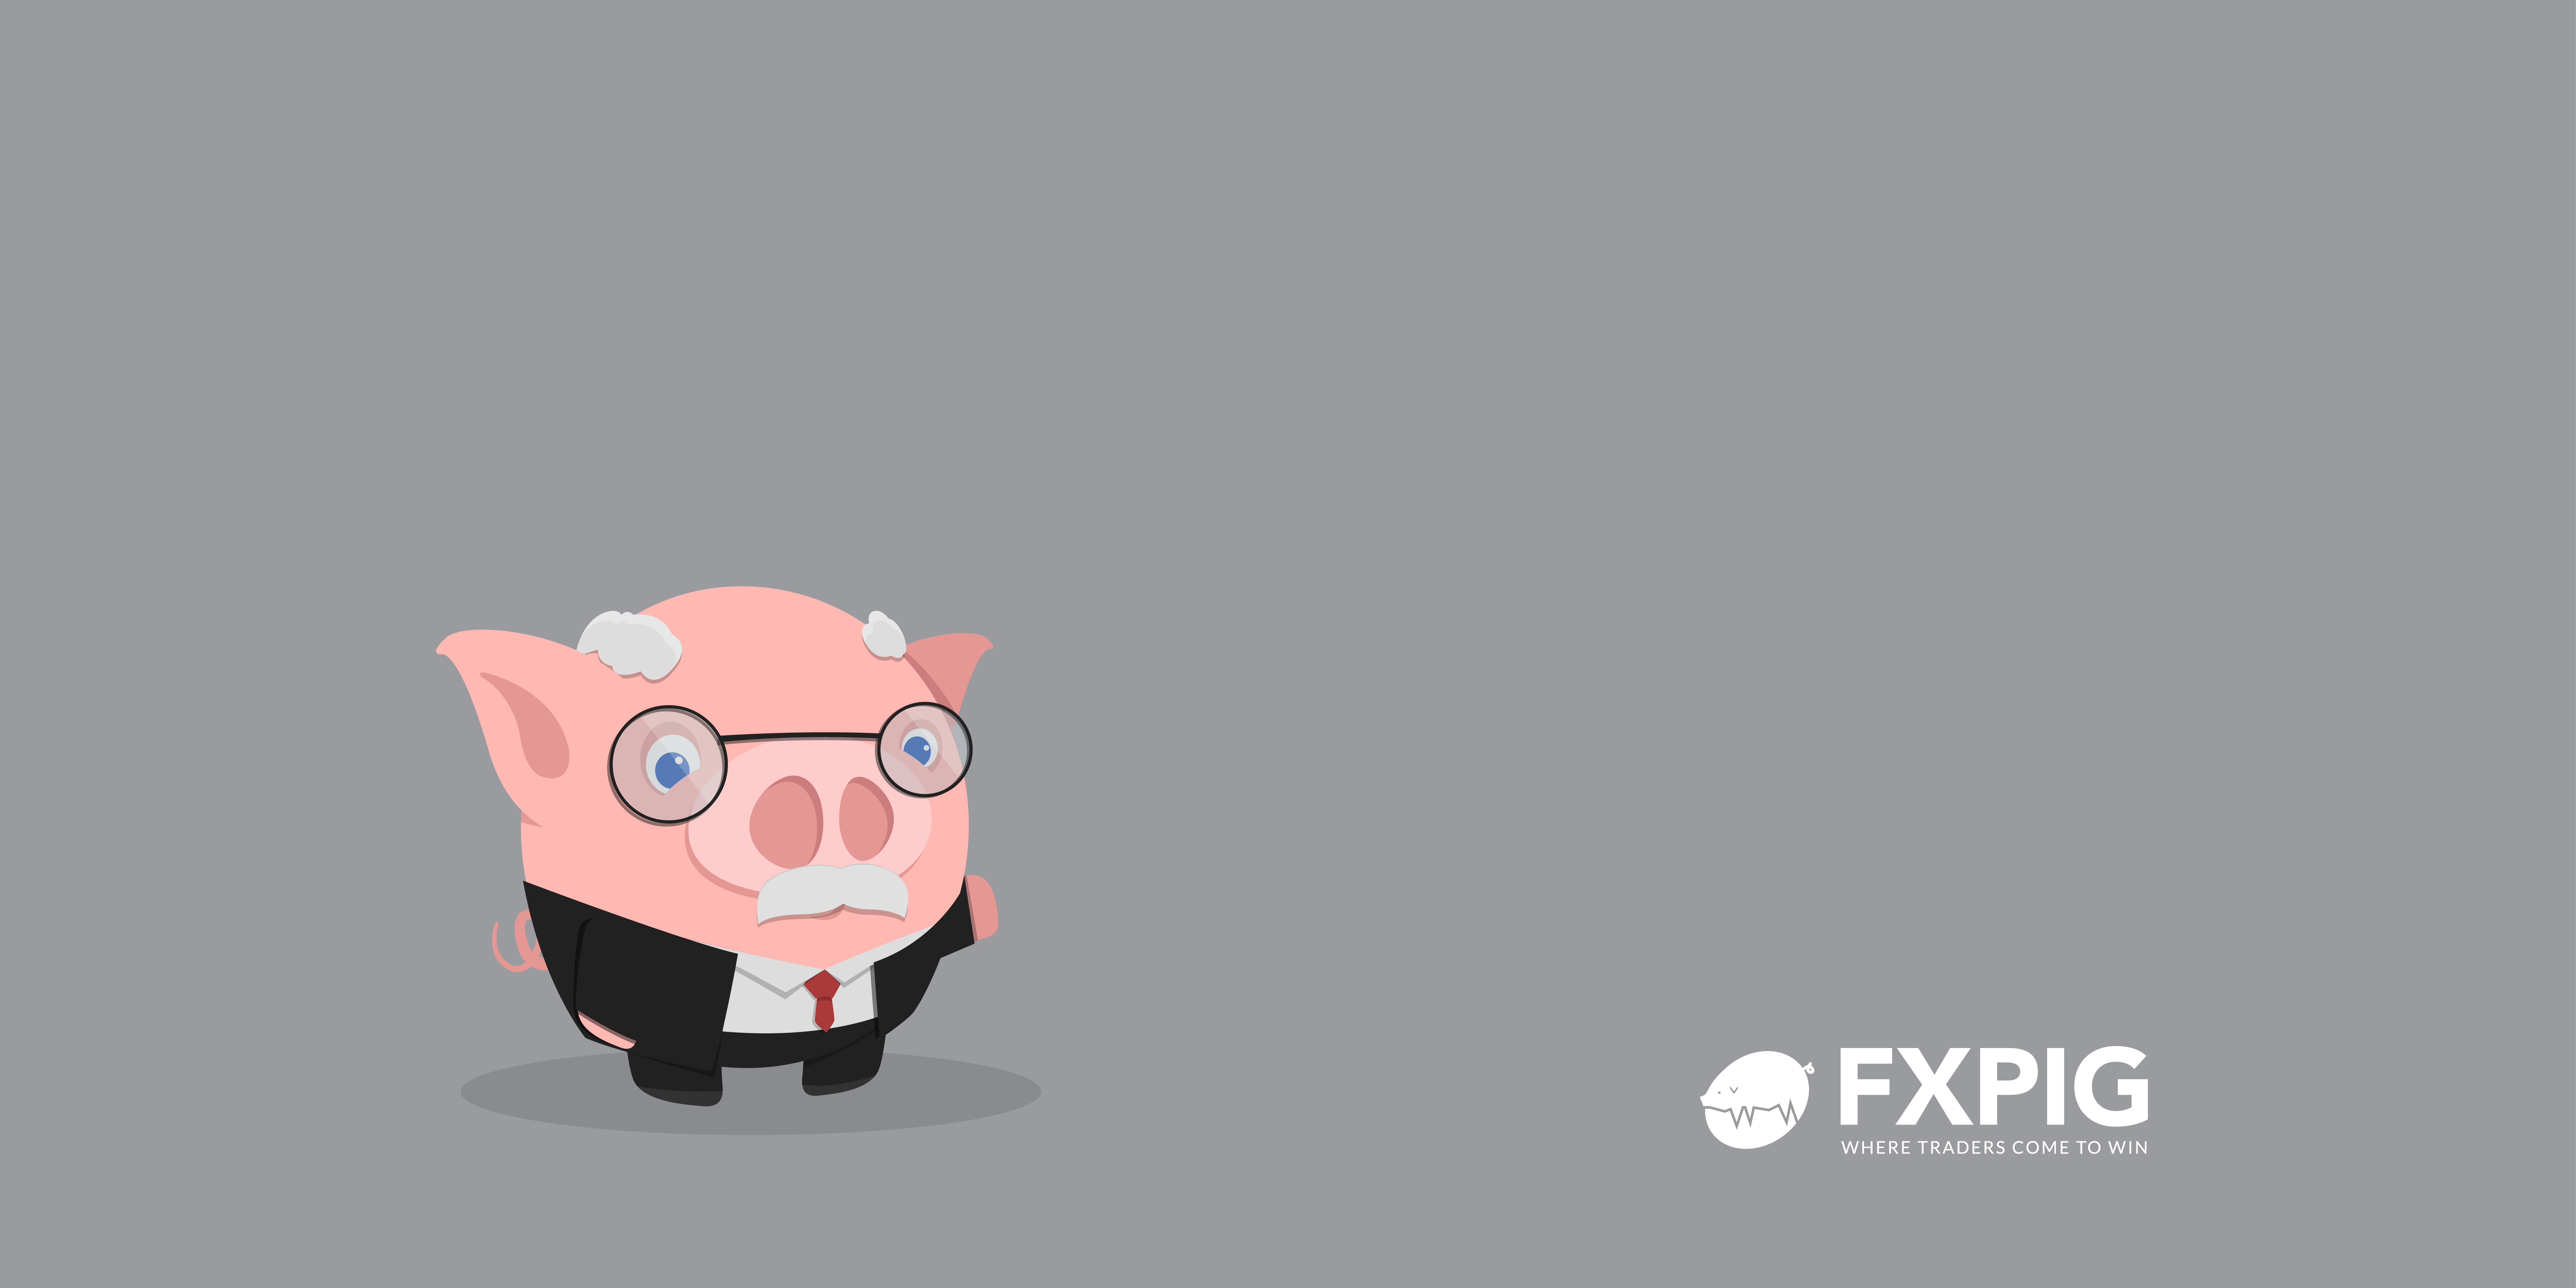 FOREX_Riskier-than-the-widespread_FXPIG